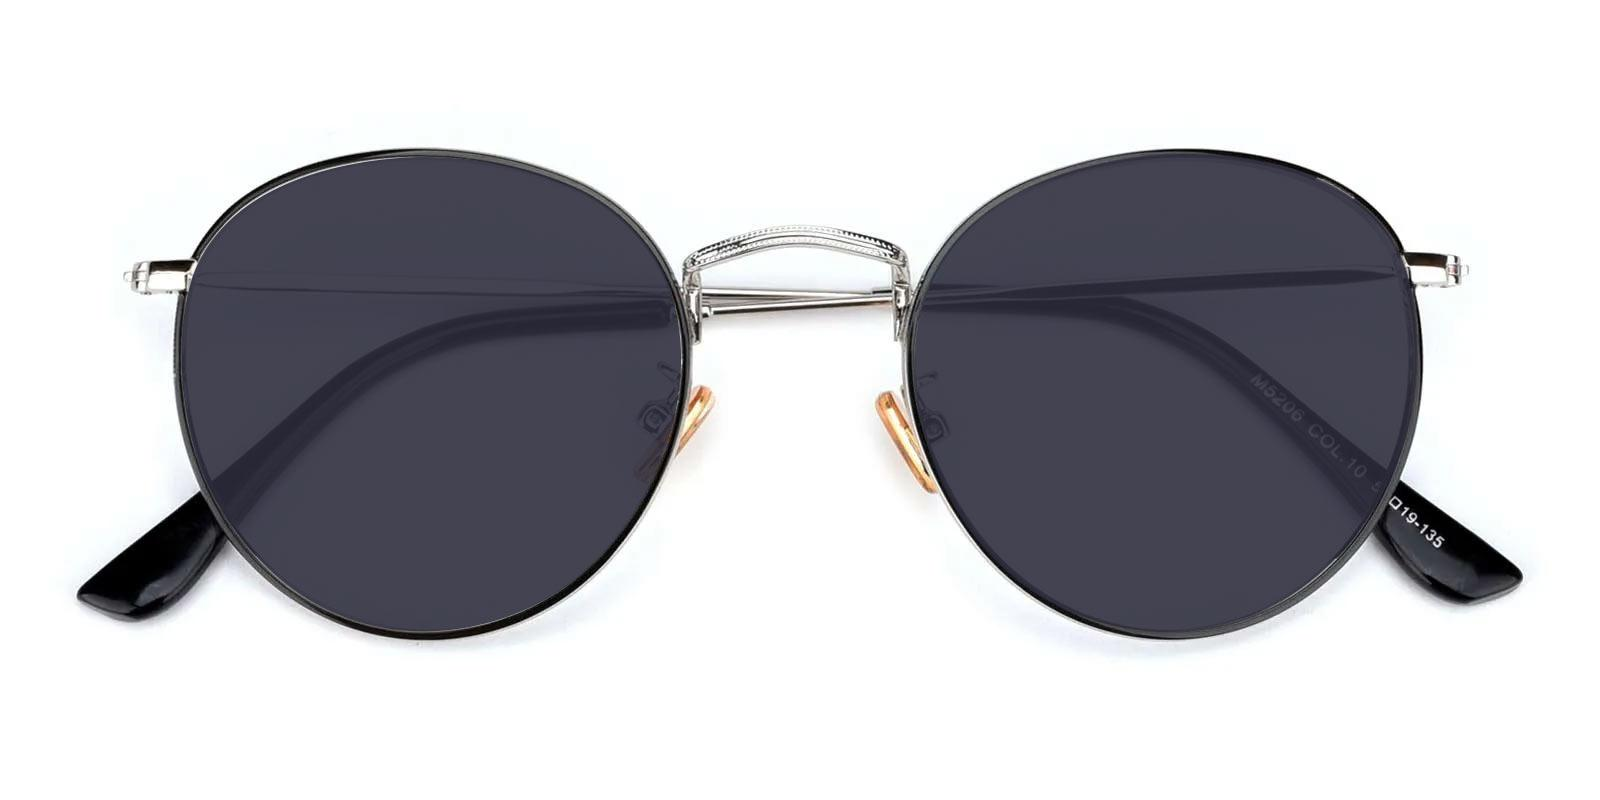 Canary-Silver-Round-Metal-Sunglasses-detail